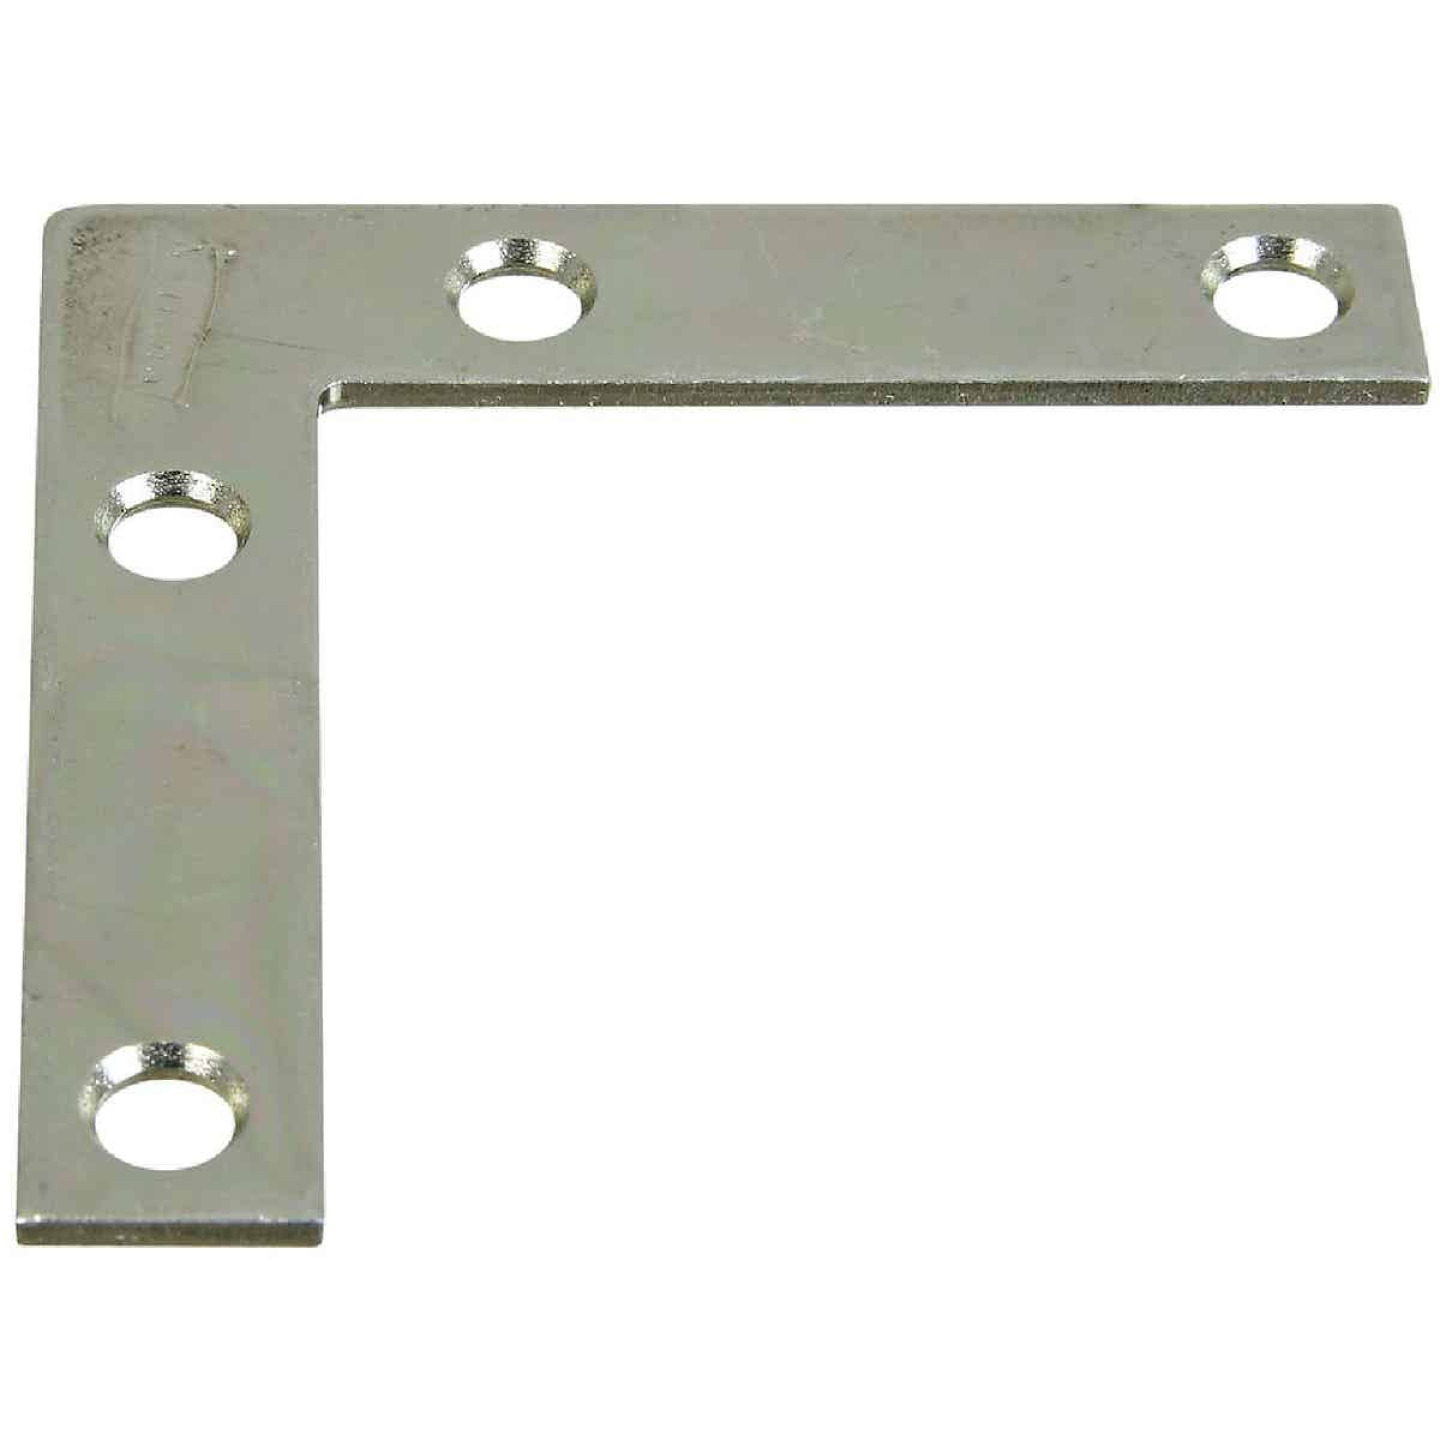 National Catalog 117 2-1/2 In. x 1/2 In. Zinc Flat Corner Iron Image 1